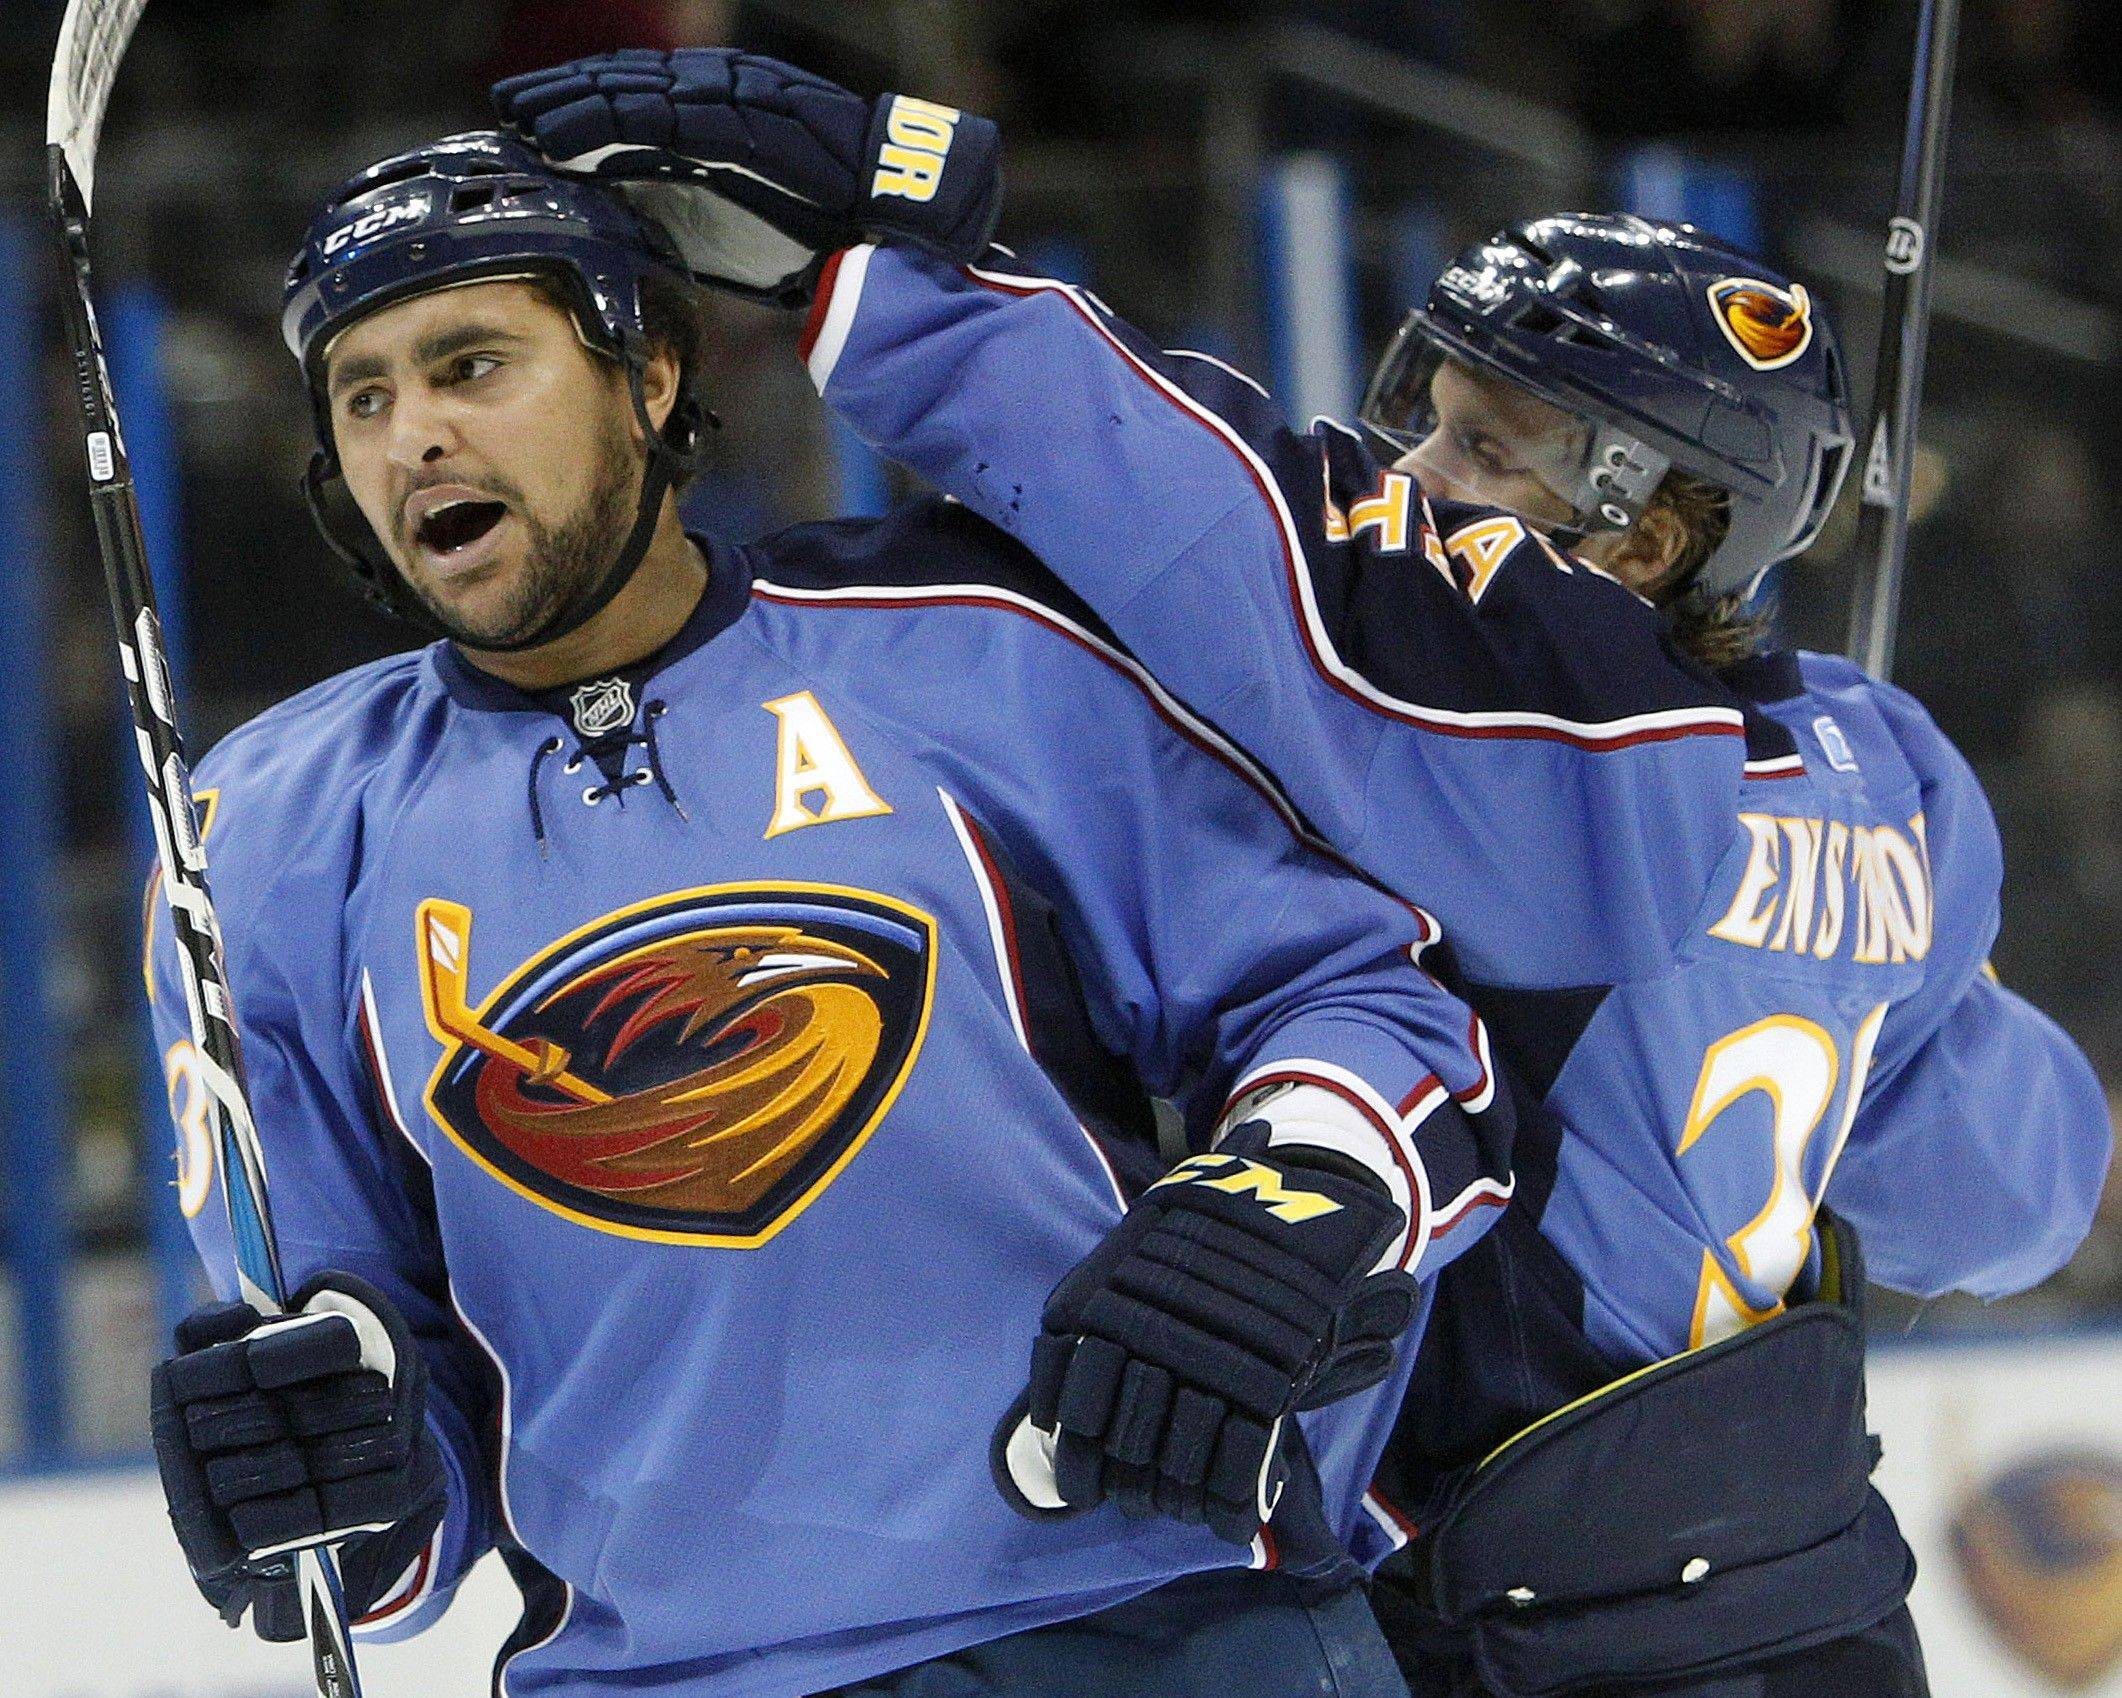 While charges have not been formally filed, NHL defensemen Dustin Byfuglien, left, was arrested in a boating incident on suspicsion of boating while intoxicated. The former Blackhawks and Atlanta Thrashers star is now with the Winnipeg Jets.